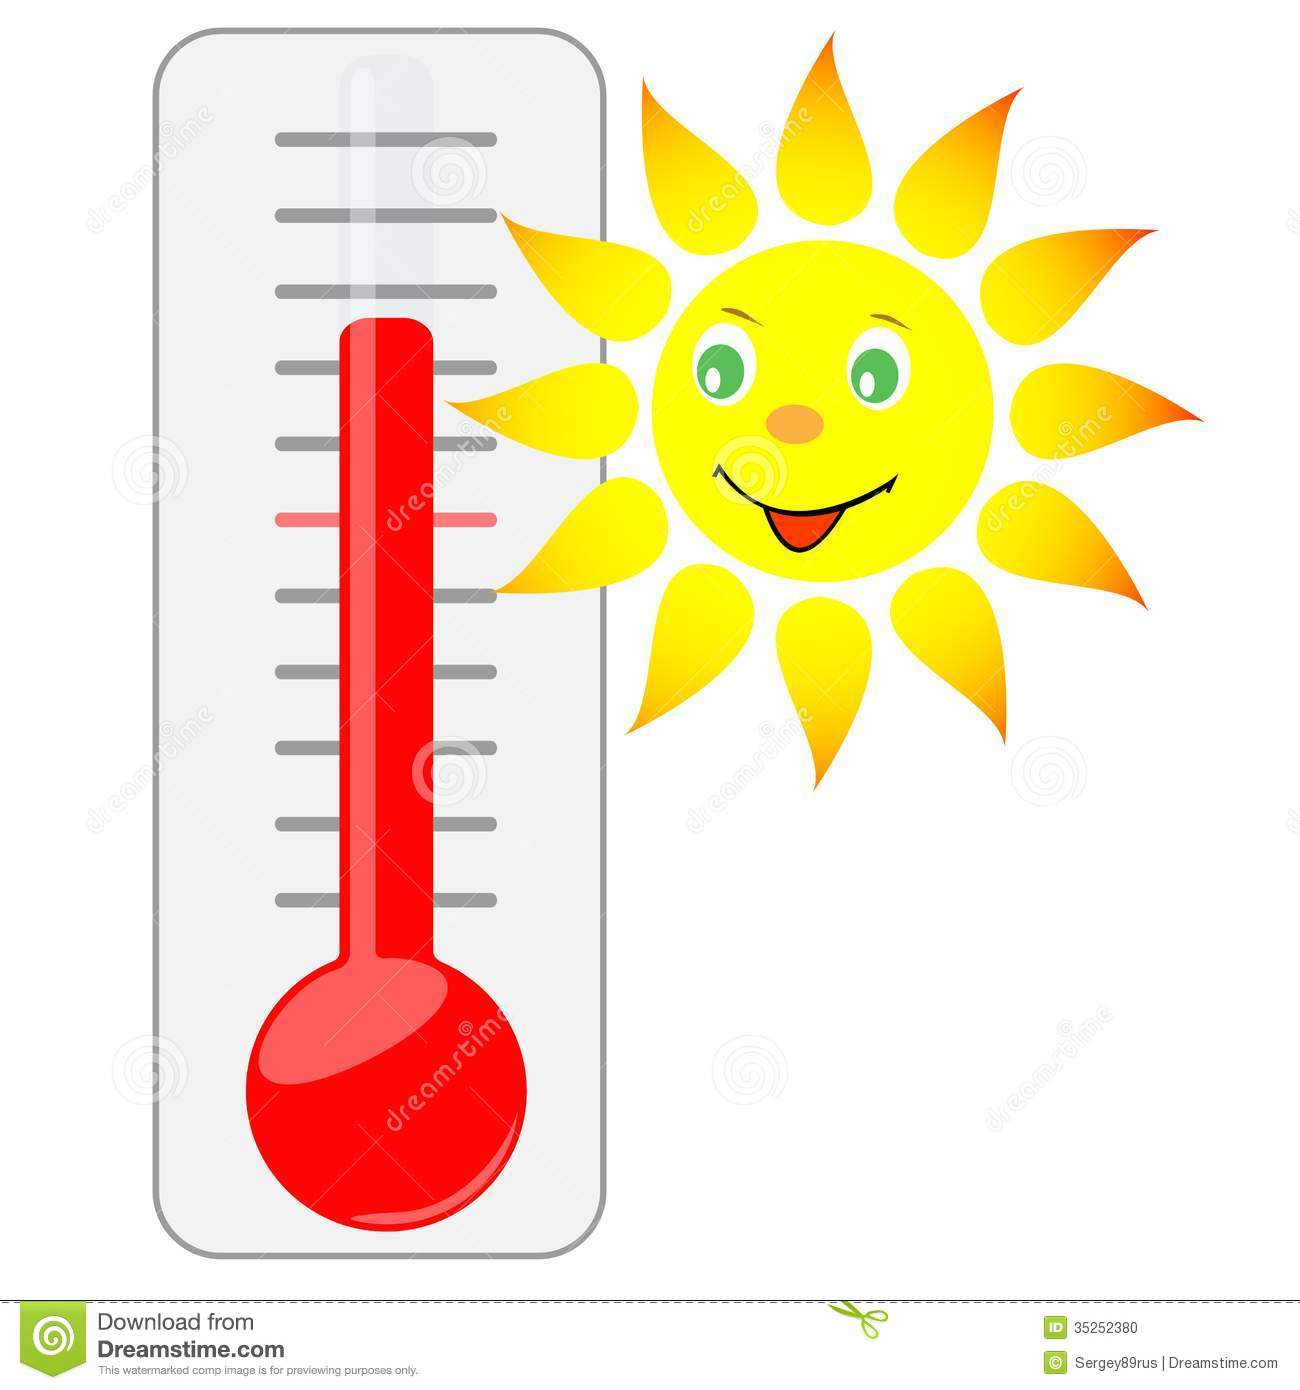 Heat clipart outdoor thermometer. Collection of free download